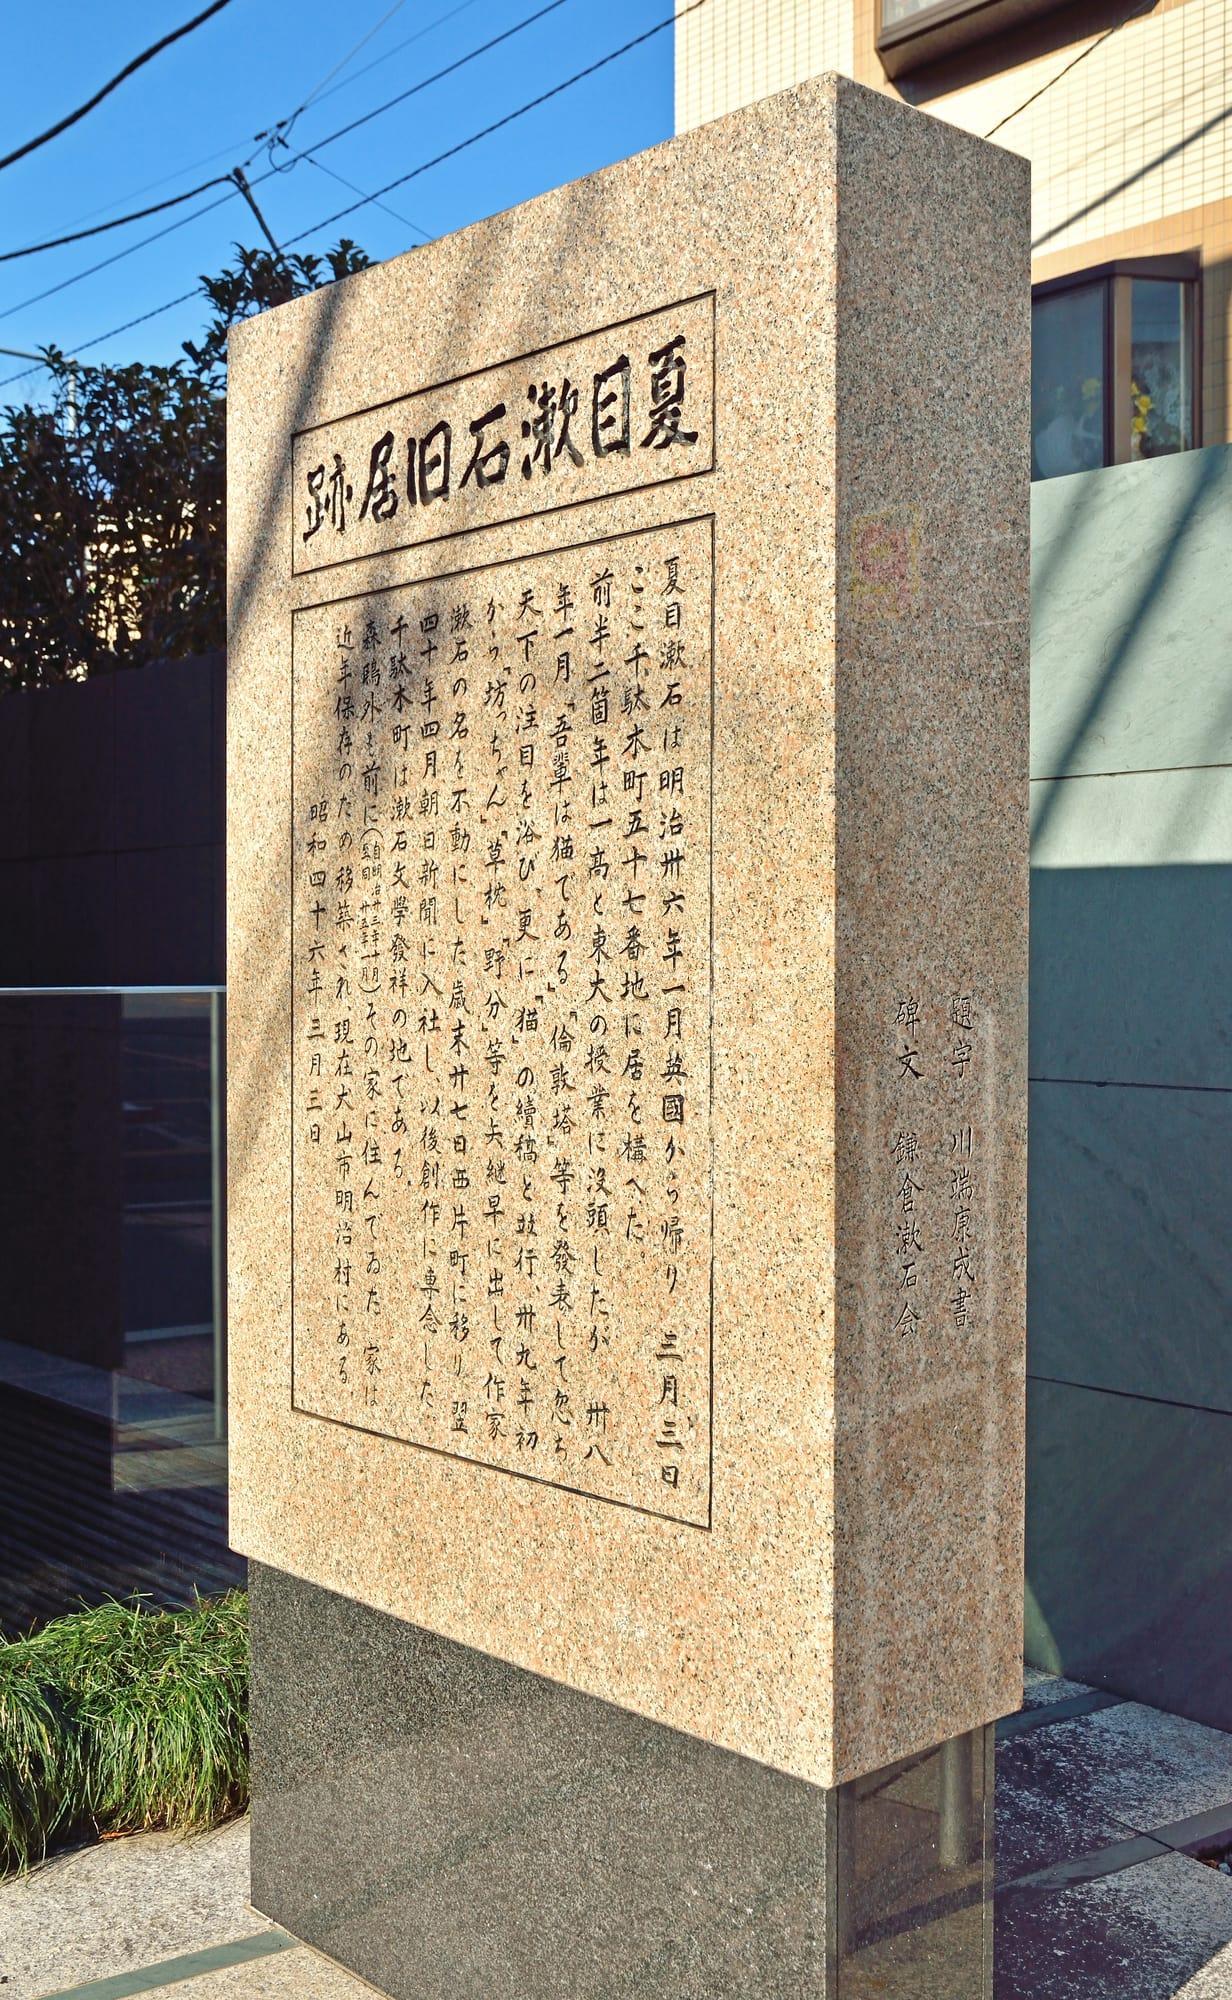 Former remaining house and side of 夏目漱石 (Sōseki Natsume) where he wrote the novel「我が輩は猫である(wagahai wa neko de aru / I'm a cat)」.